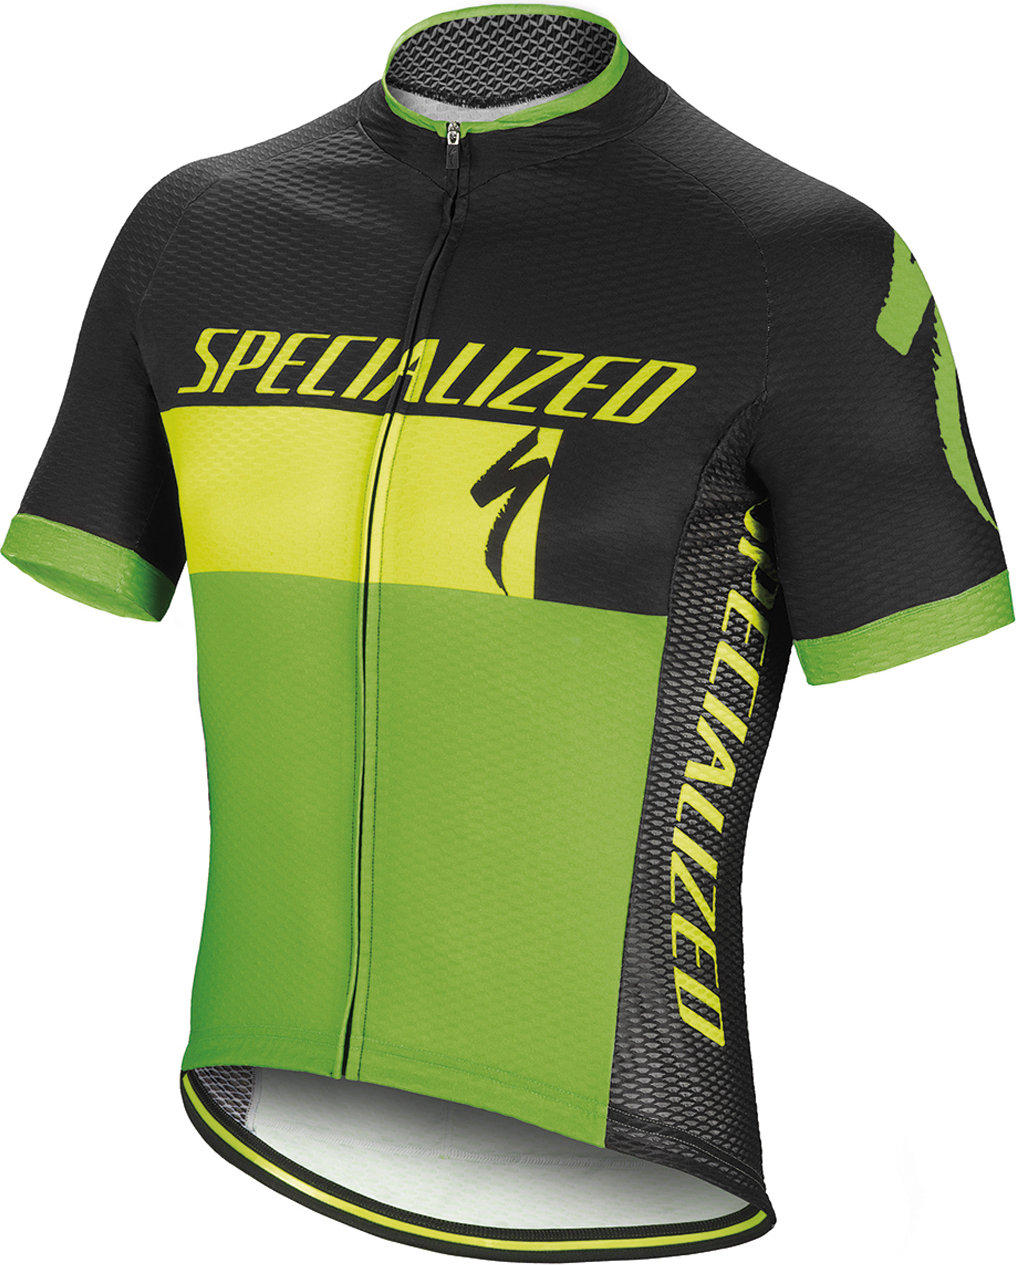 3e904bdc1 2017 Specialized RBX Comp Logo SS Jersey - Specialized Concept Store